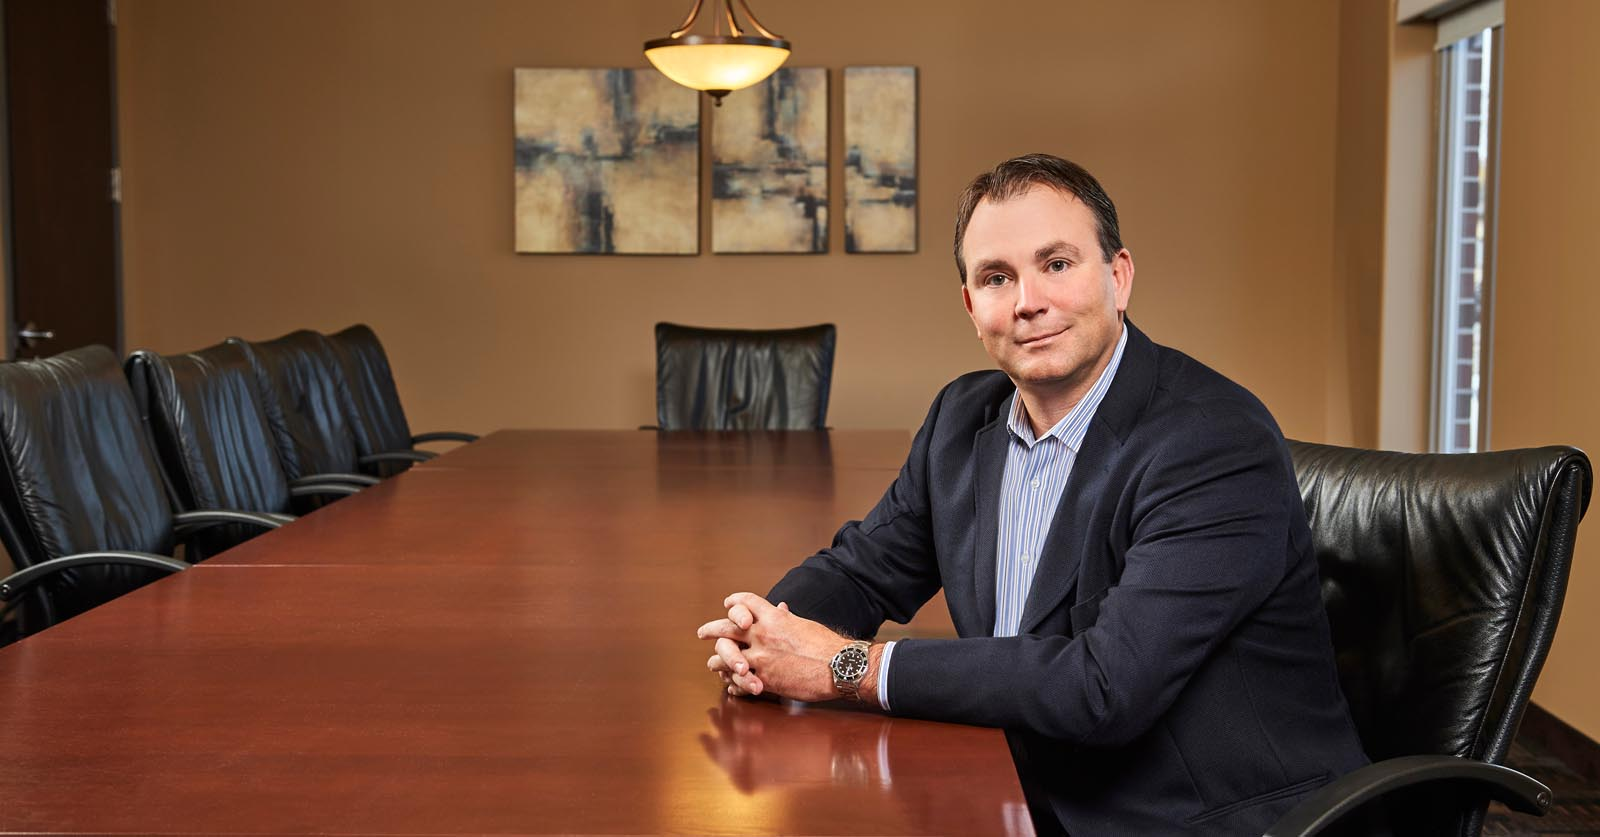 Darin_Cleary_Millards Chartered Professional Accountants